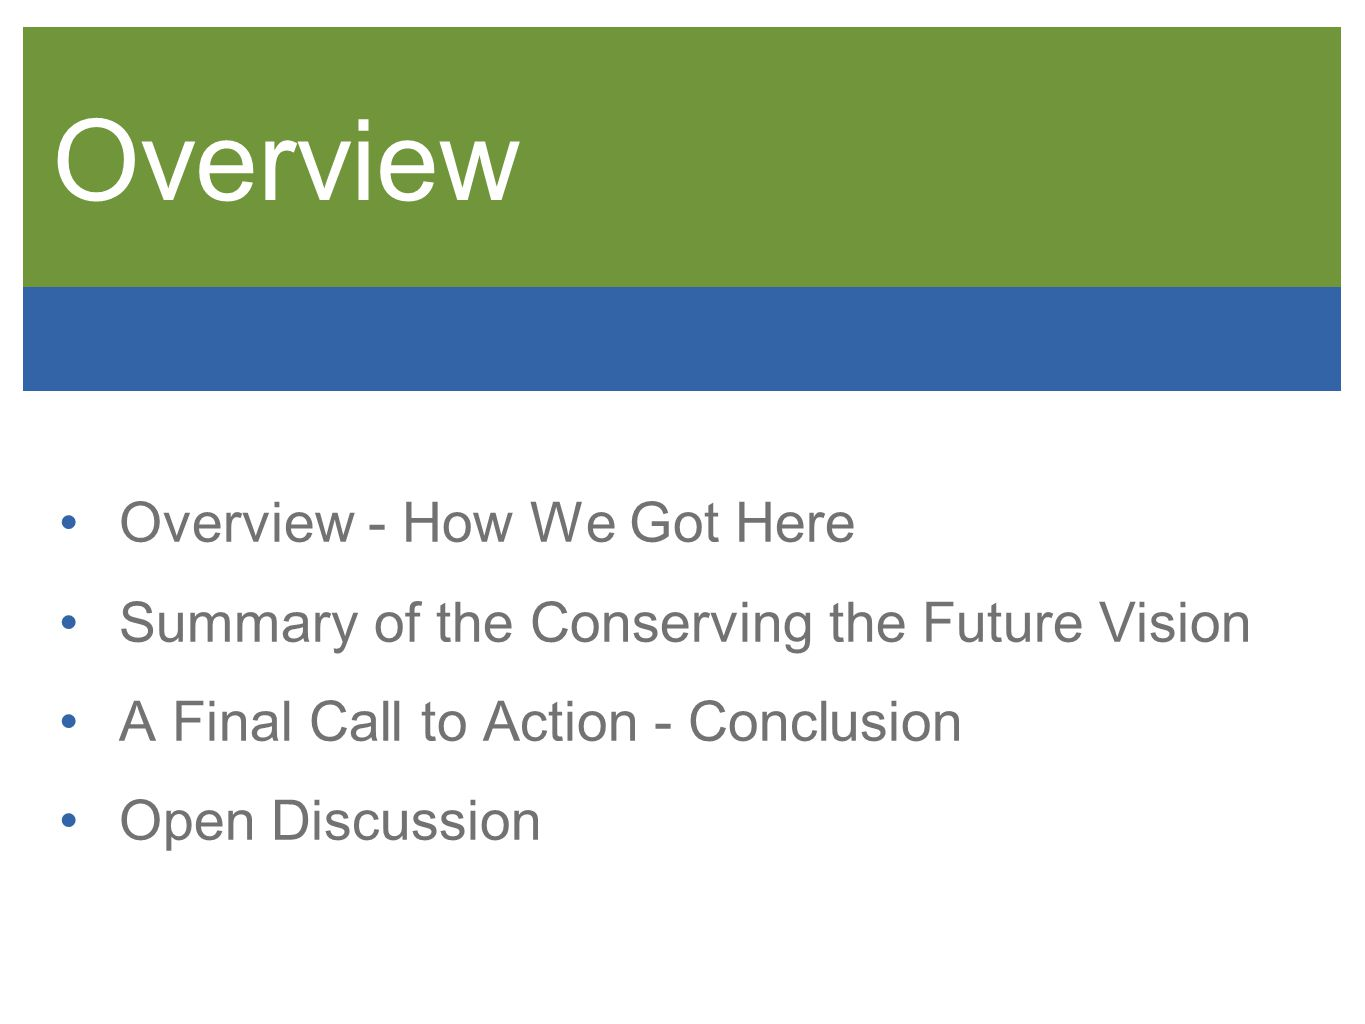 Overview Overview - How We Got Here Summary of the Conserving the Future Vision A Final Call to Action - Conclusion Open Discussion